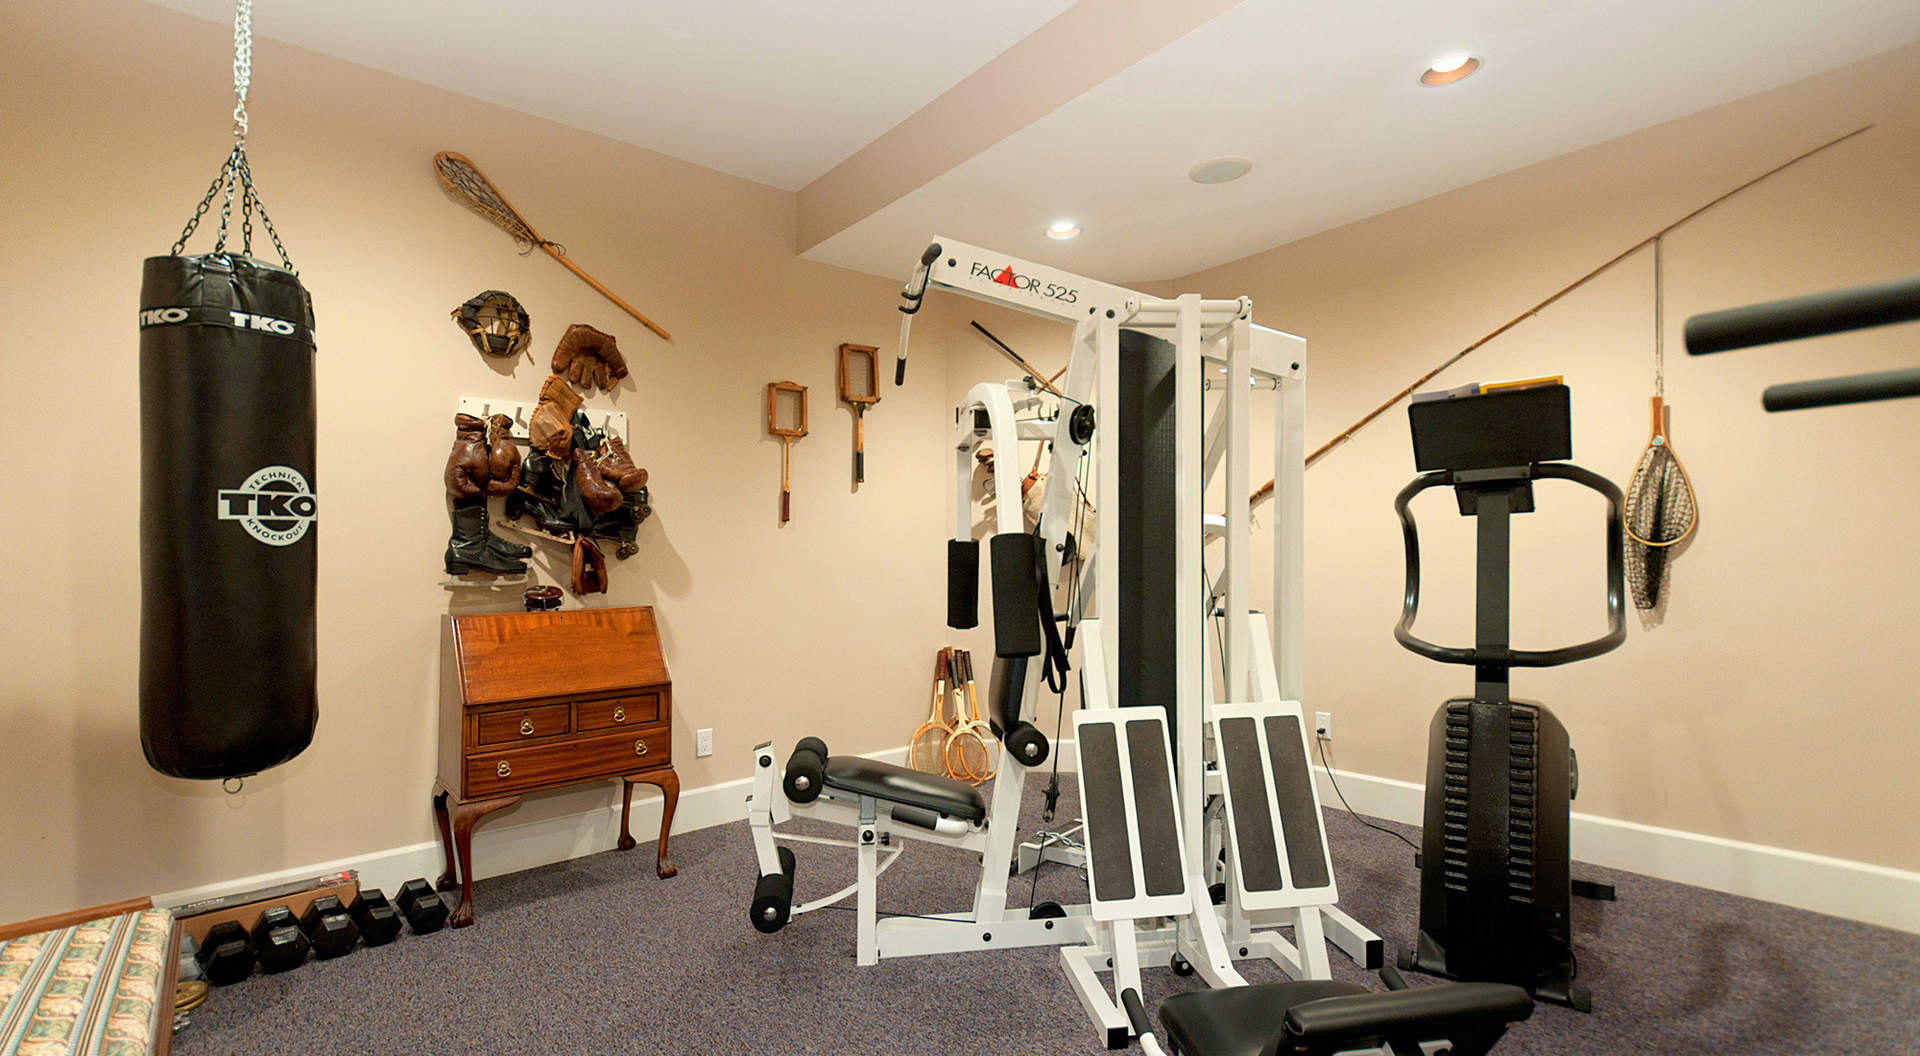 Home gym ideas garage small workout room ideas garage awesome home